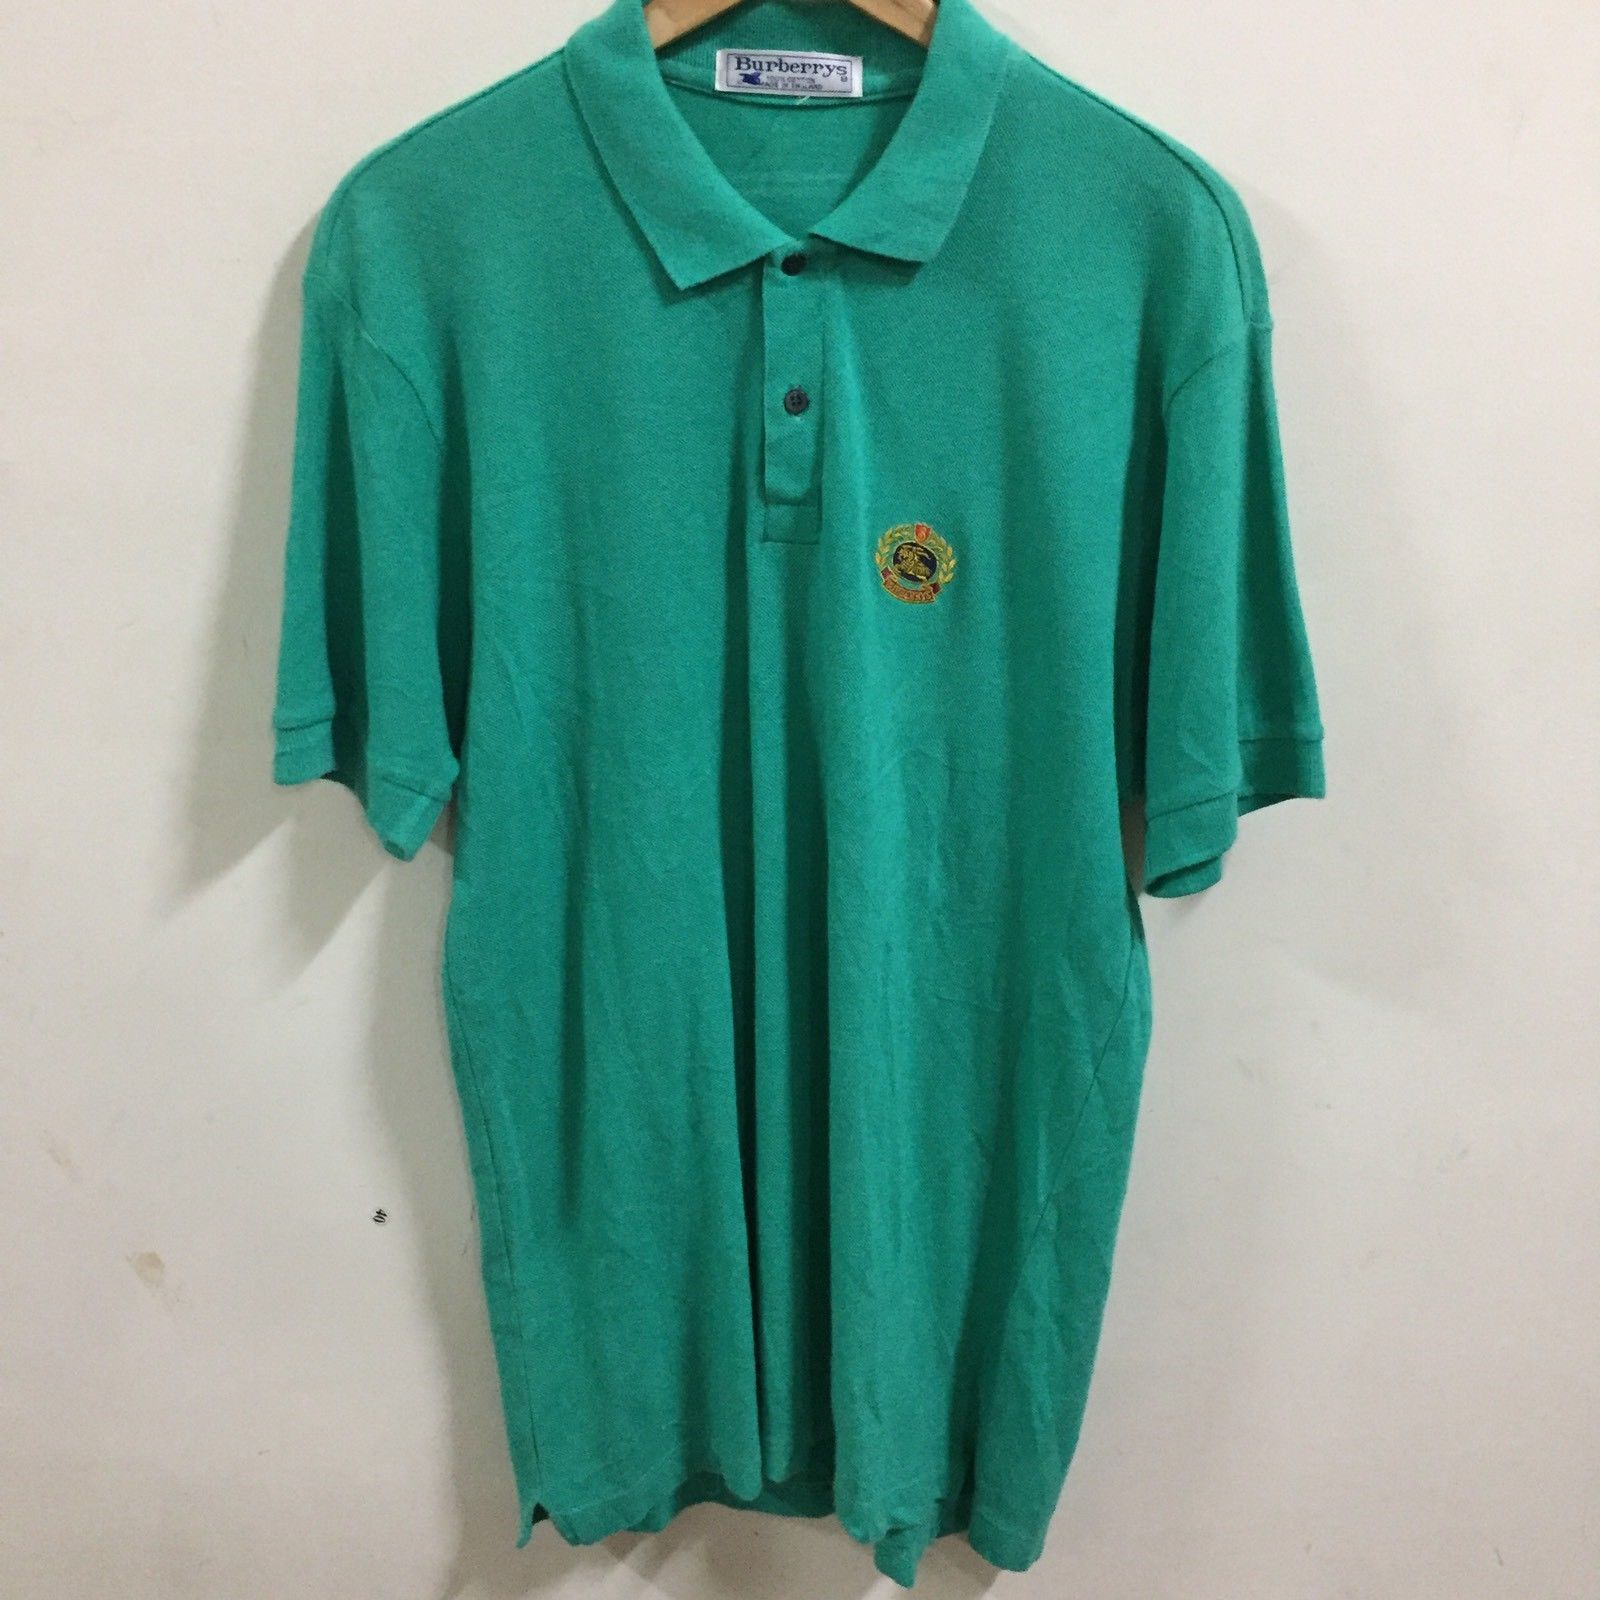 b08cb7ed Men's BURBERRYS LONDON GOLF tennis Polo Shirt Size L MADE IN ENGLAND Green  - $25.74 · Advanced search for Burberry ...